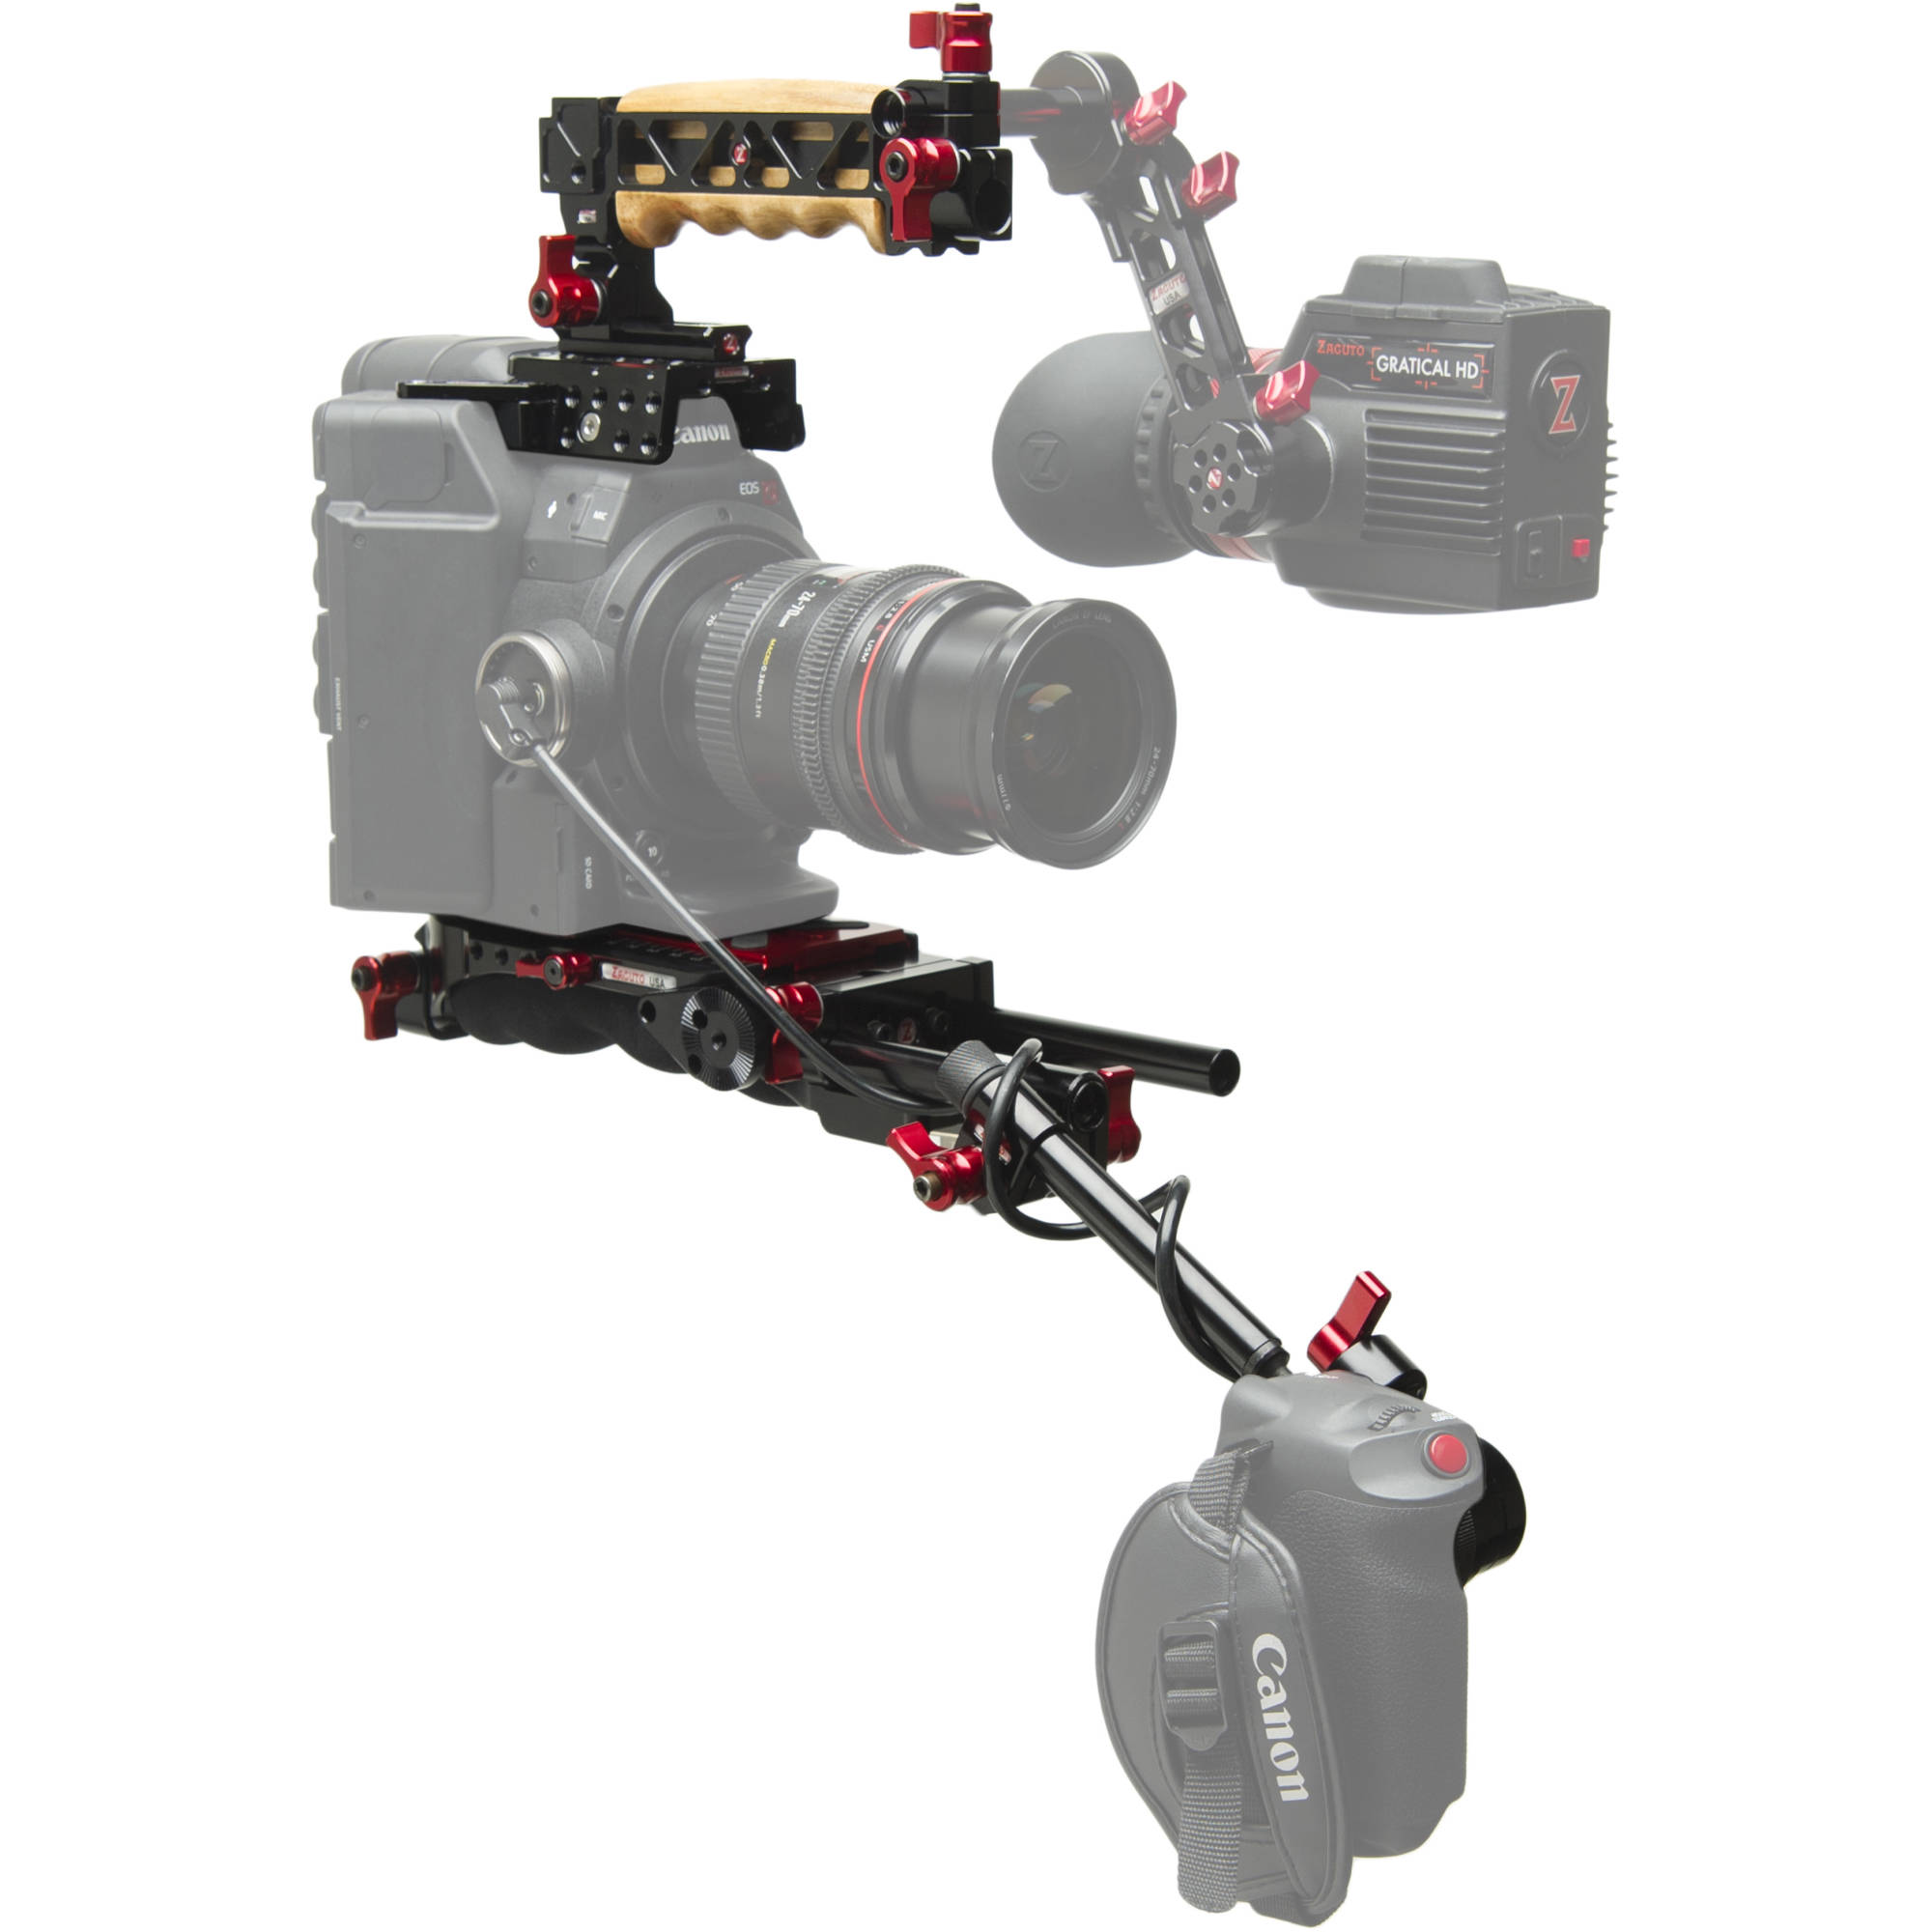 Https C Product 1389259 Reg Canon Eos 6d Kit 24 105mm F 40l Is Usm Wifi And Gps Zacuto Z C3002er V2 C300 Mark Ii Evf 1293738